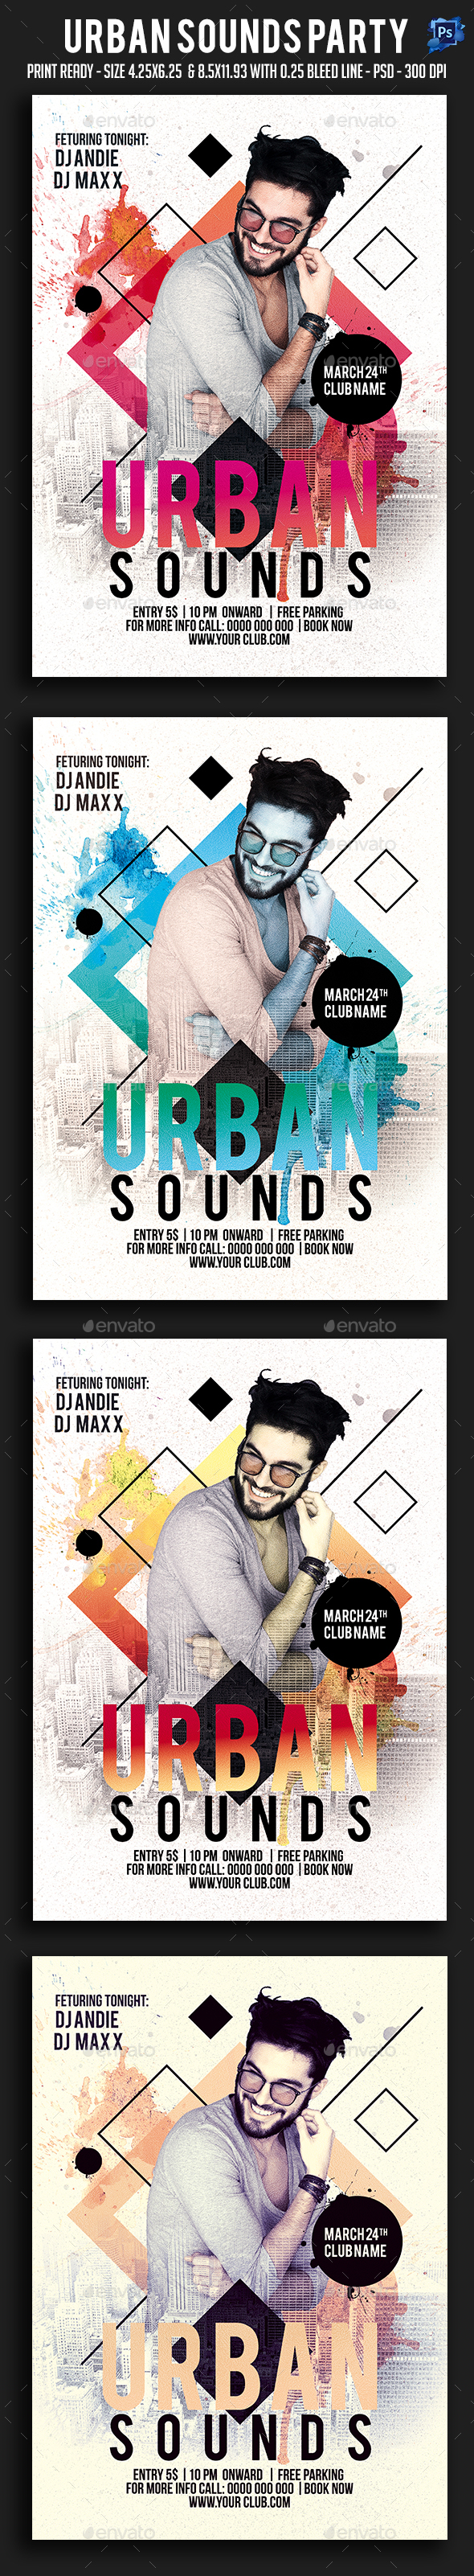 Urban Sounds Party Flyer - Clubs & Parties Events